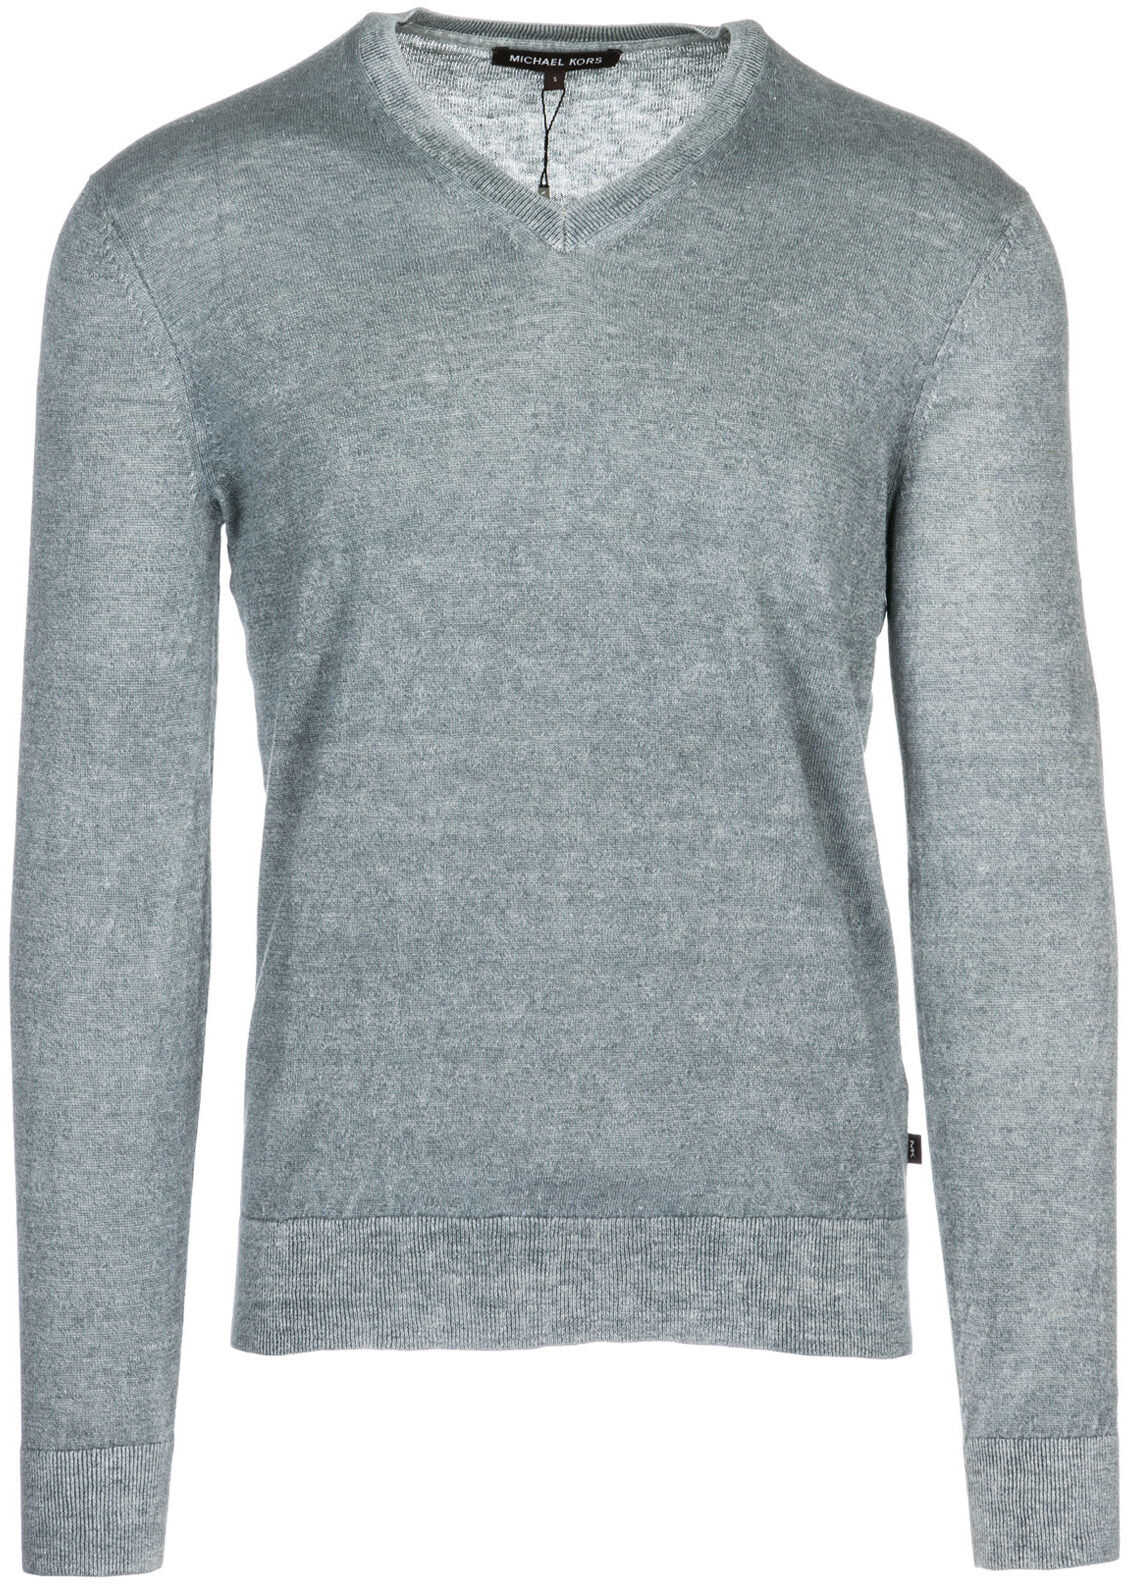 Michael Kors Sweater Pullover Grey